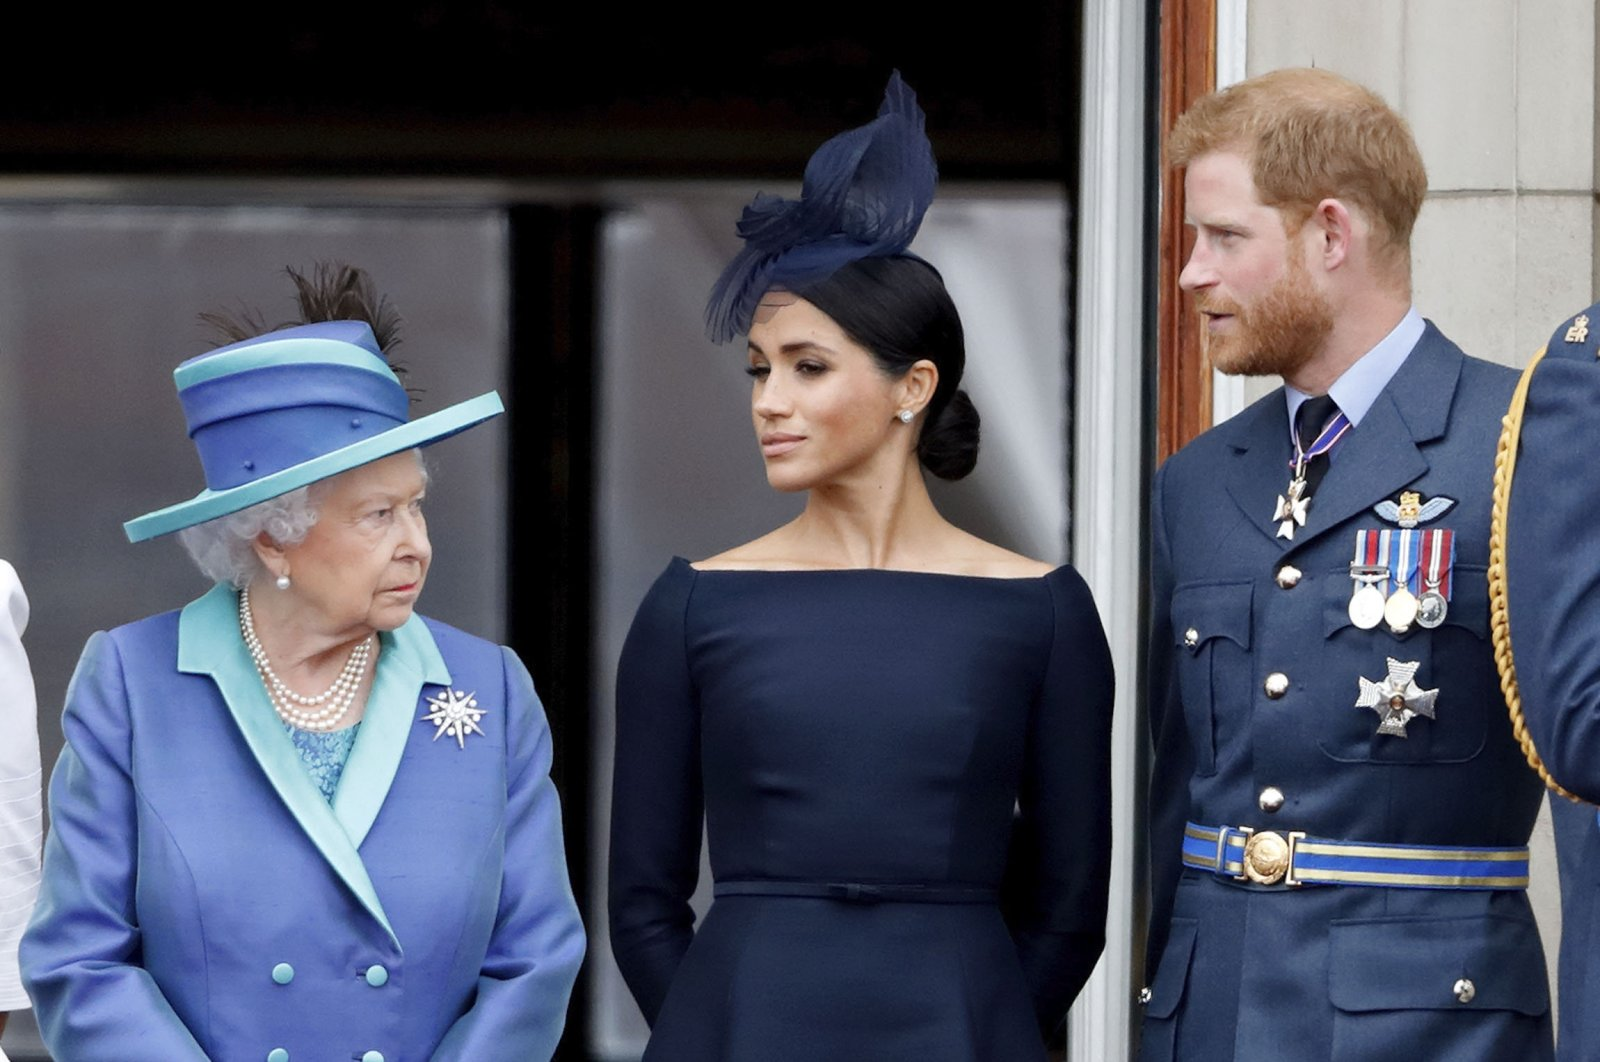 Queen Elizabeth II, Meghan, Duchess of Sussex and Prince Harry, Duke of Sussex watch a flypast to mark the centenary of the Royal Air Force from the balcony of Buckingham Palace, London, July 10, 2018. (Getty Images)